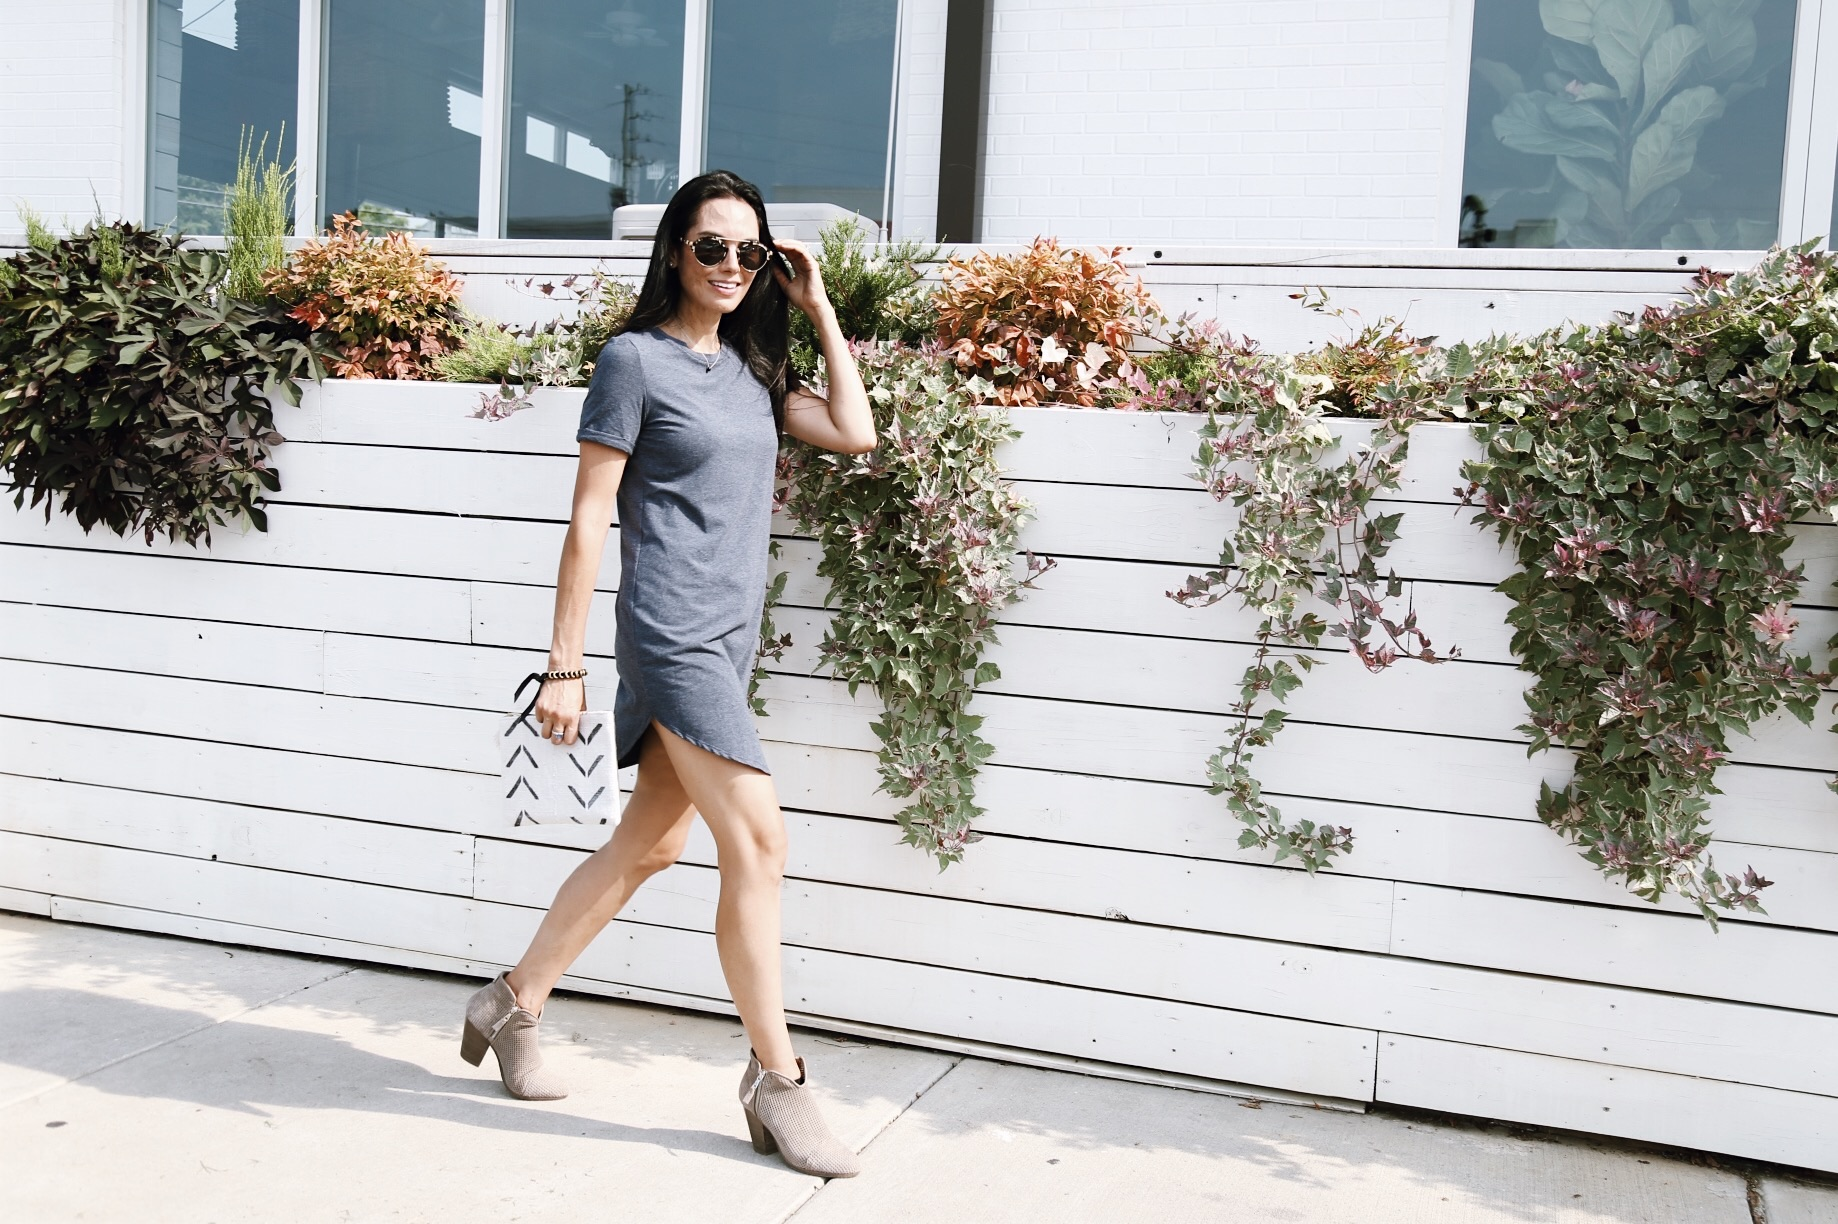 |  rag and bone booties 50% off  |  sunnies similar  |  dress similar  |  clutch  | image by Sydney Clawson |